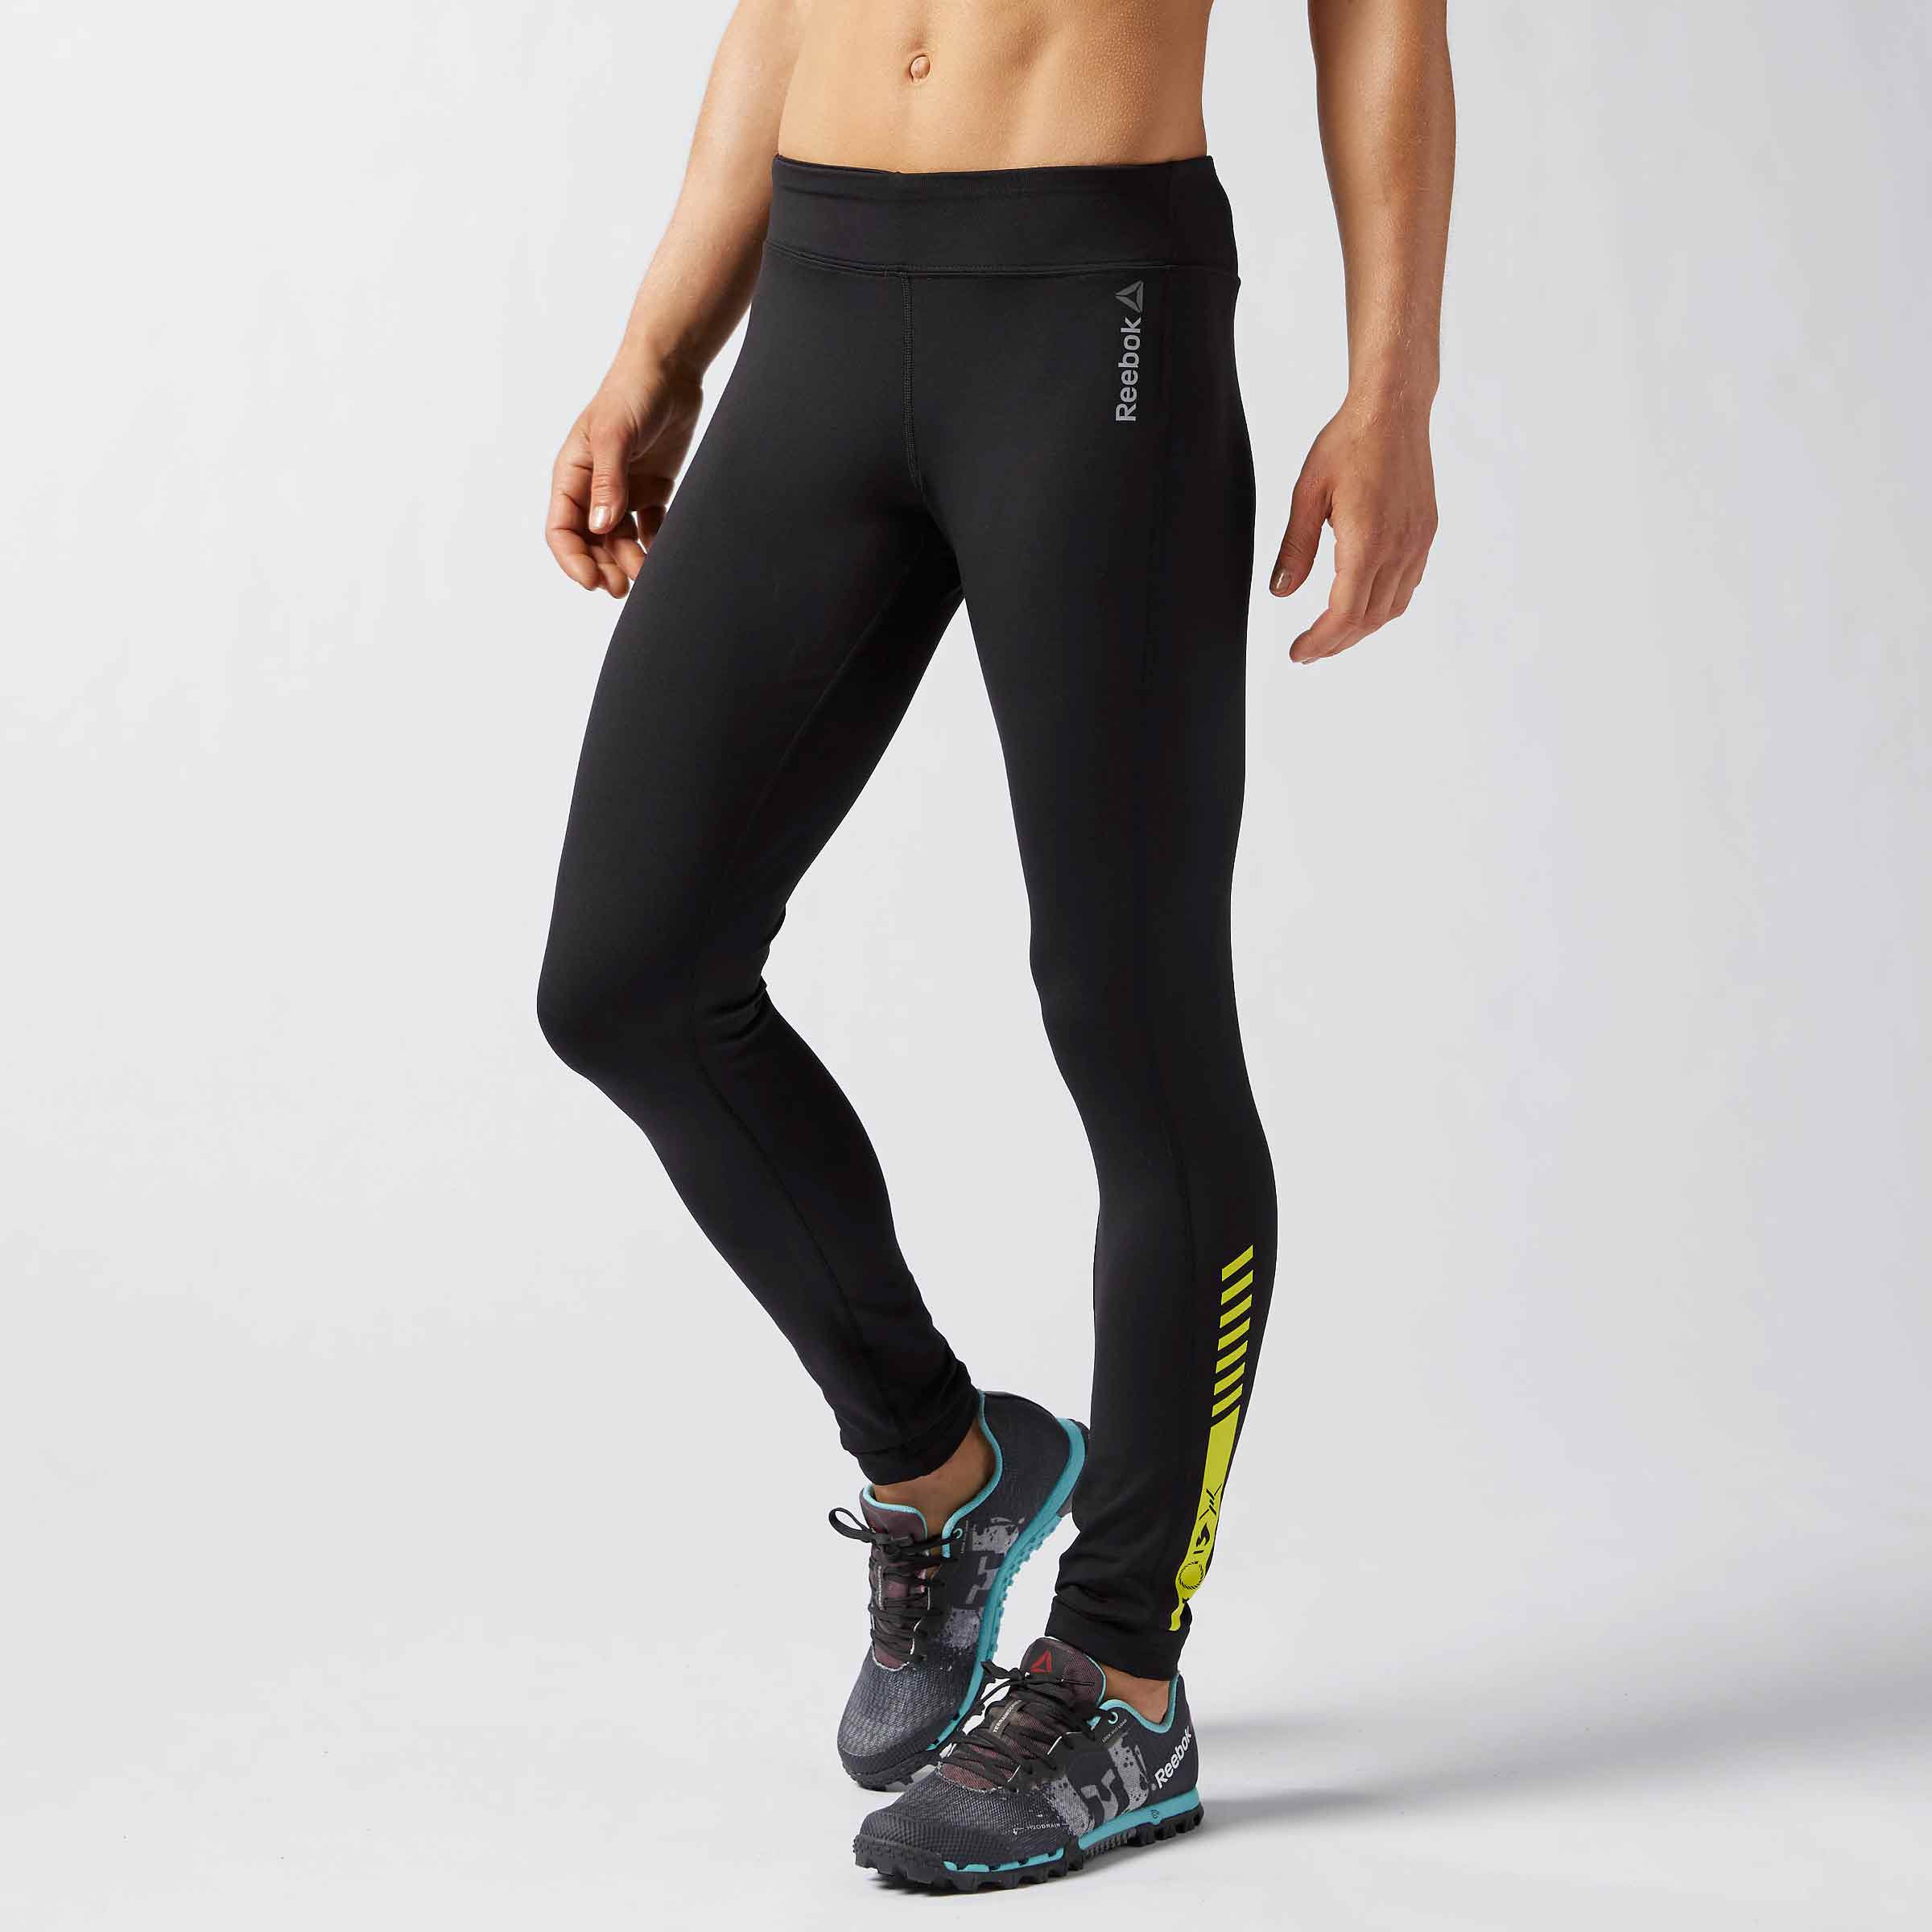 Reebok Spartan Leggings